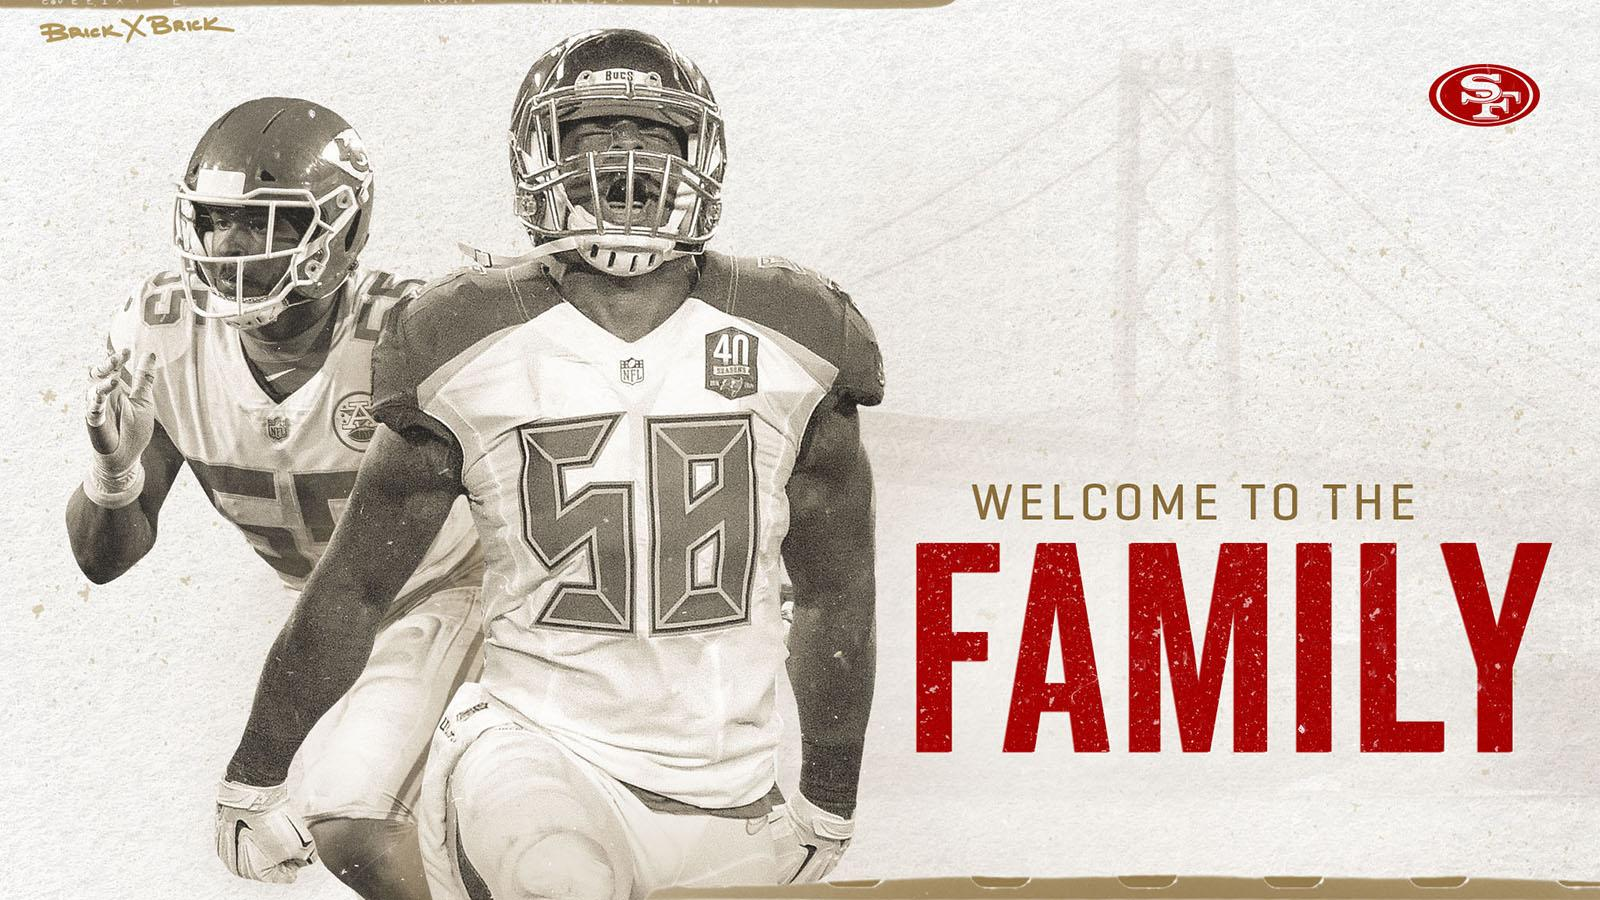 It's official! Welcome to the family Dee Ford & @kwon.  https://t.co/2zy1aFGnuS https://t.co/C6Im0OTRLC